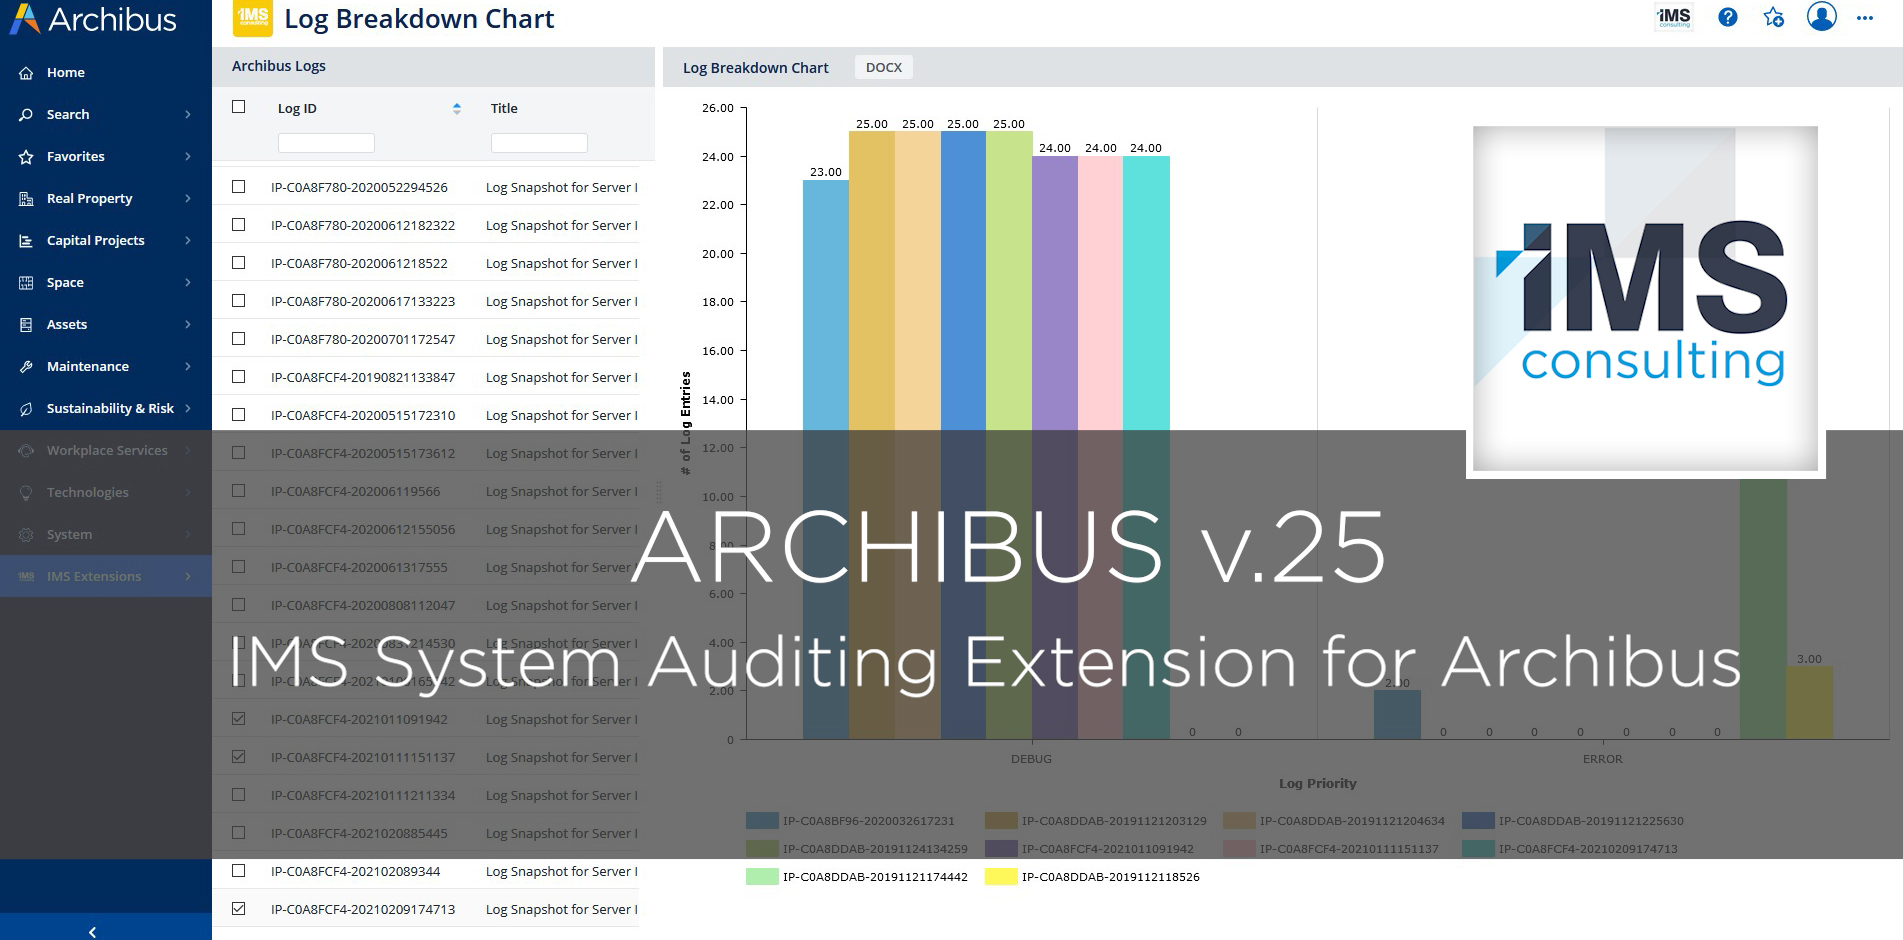 IMS System Auditing Extension - IMS Consulting